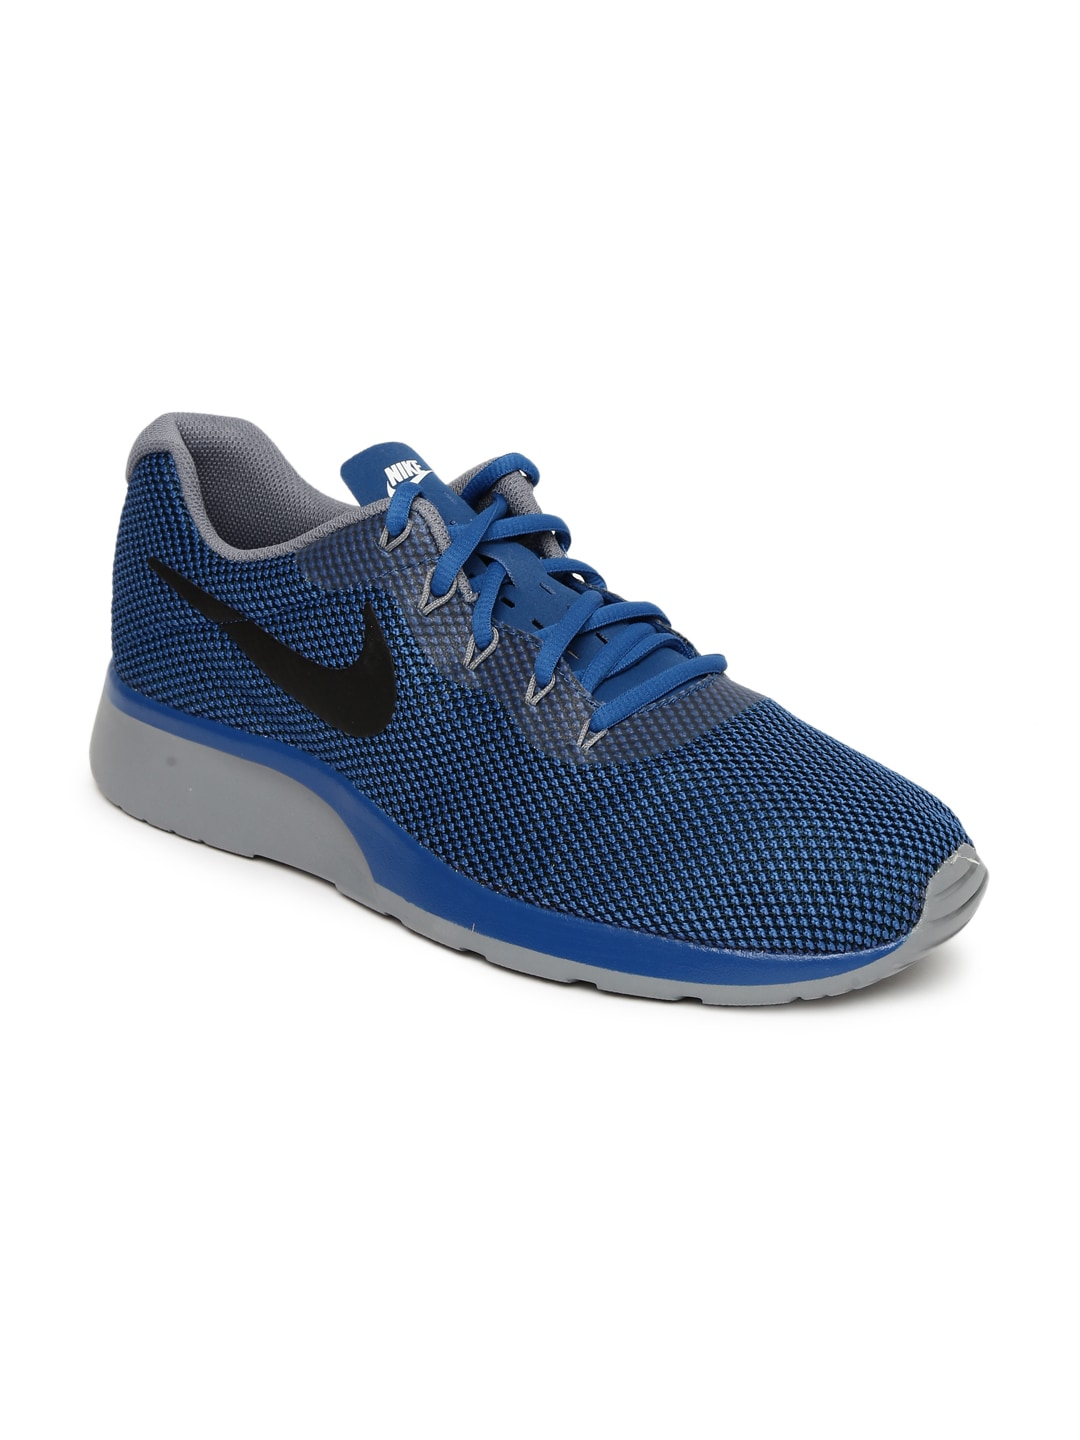 Nike Men Navy Blue TANJUN RACER Sneakers image